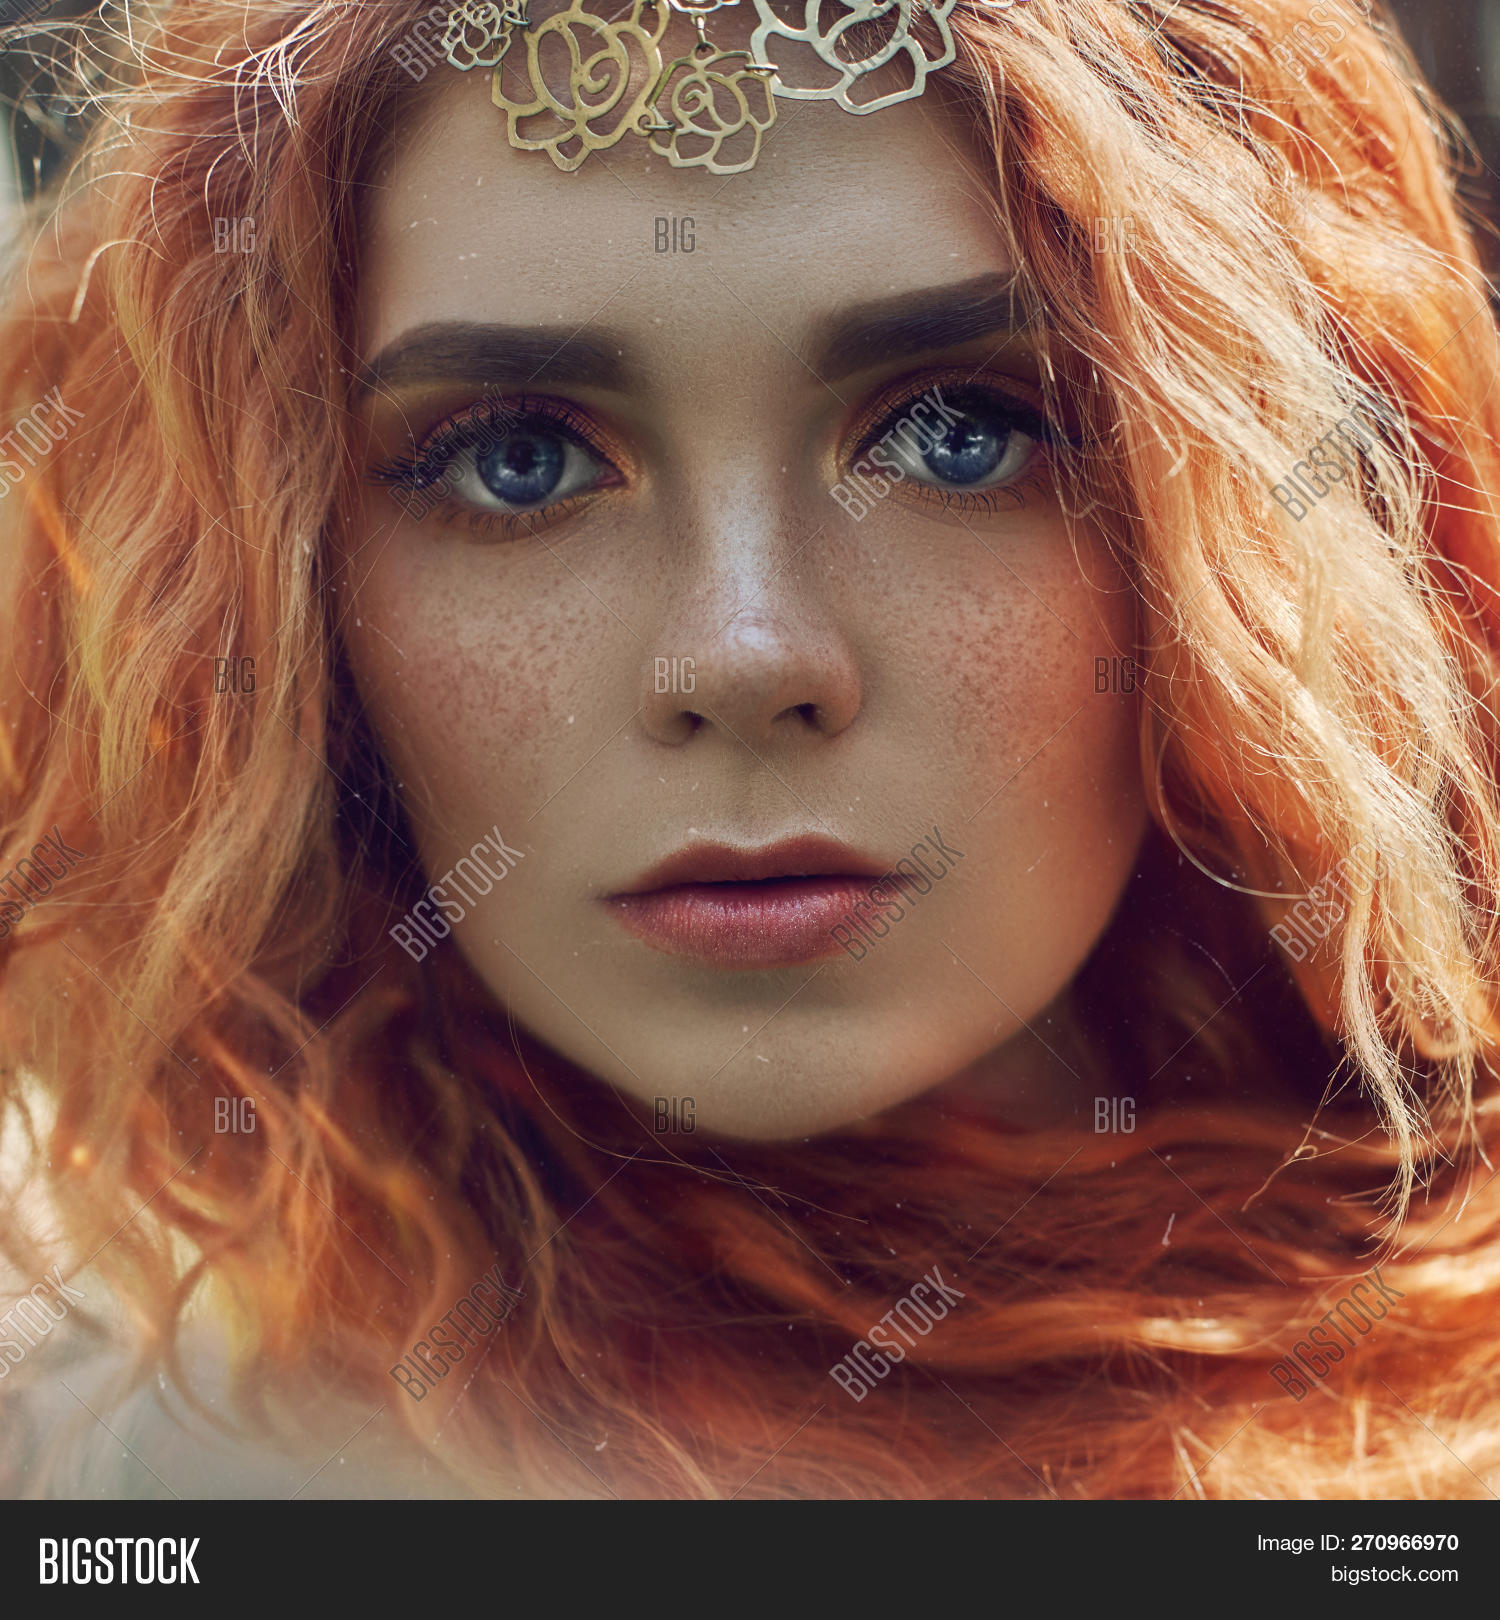 For beautiful redhead girls with freckles really. happens